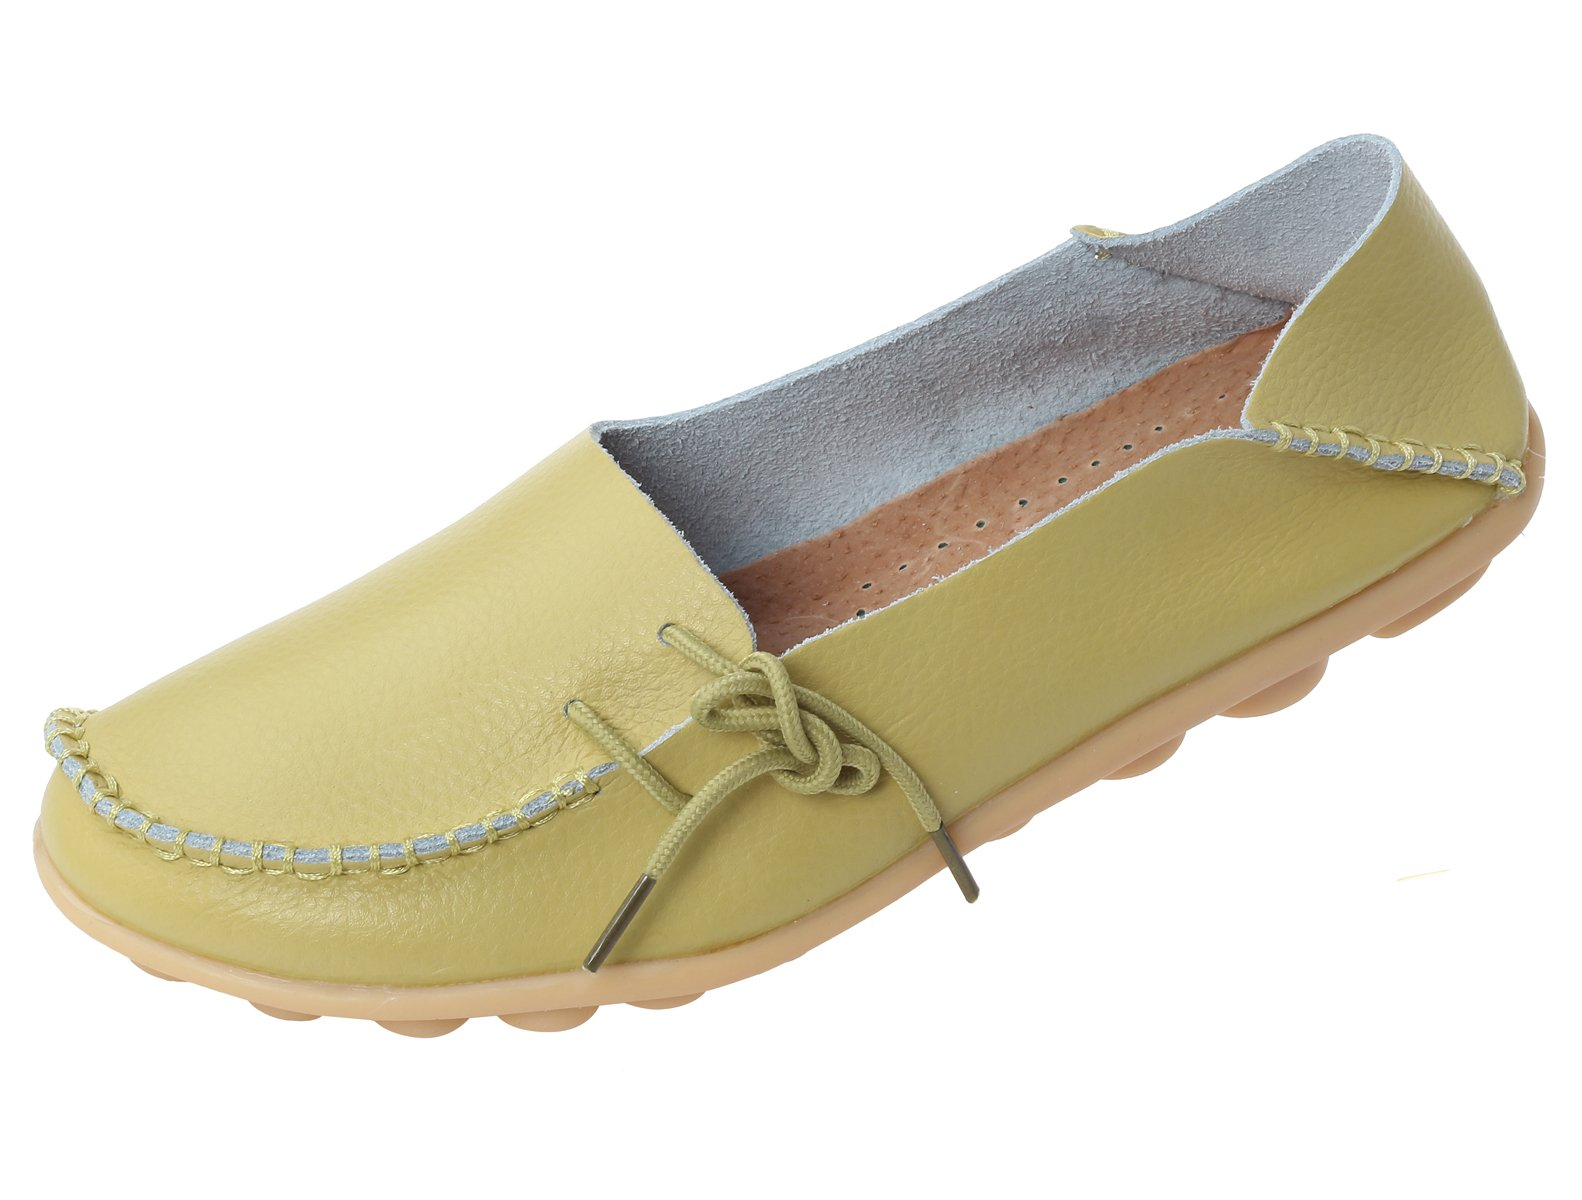 Mordenmiss Women's Casual Solid Color Moccasins Leather Loafer Shoes 42 Style 1-Apple Green